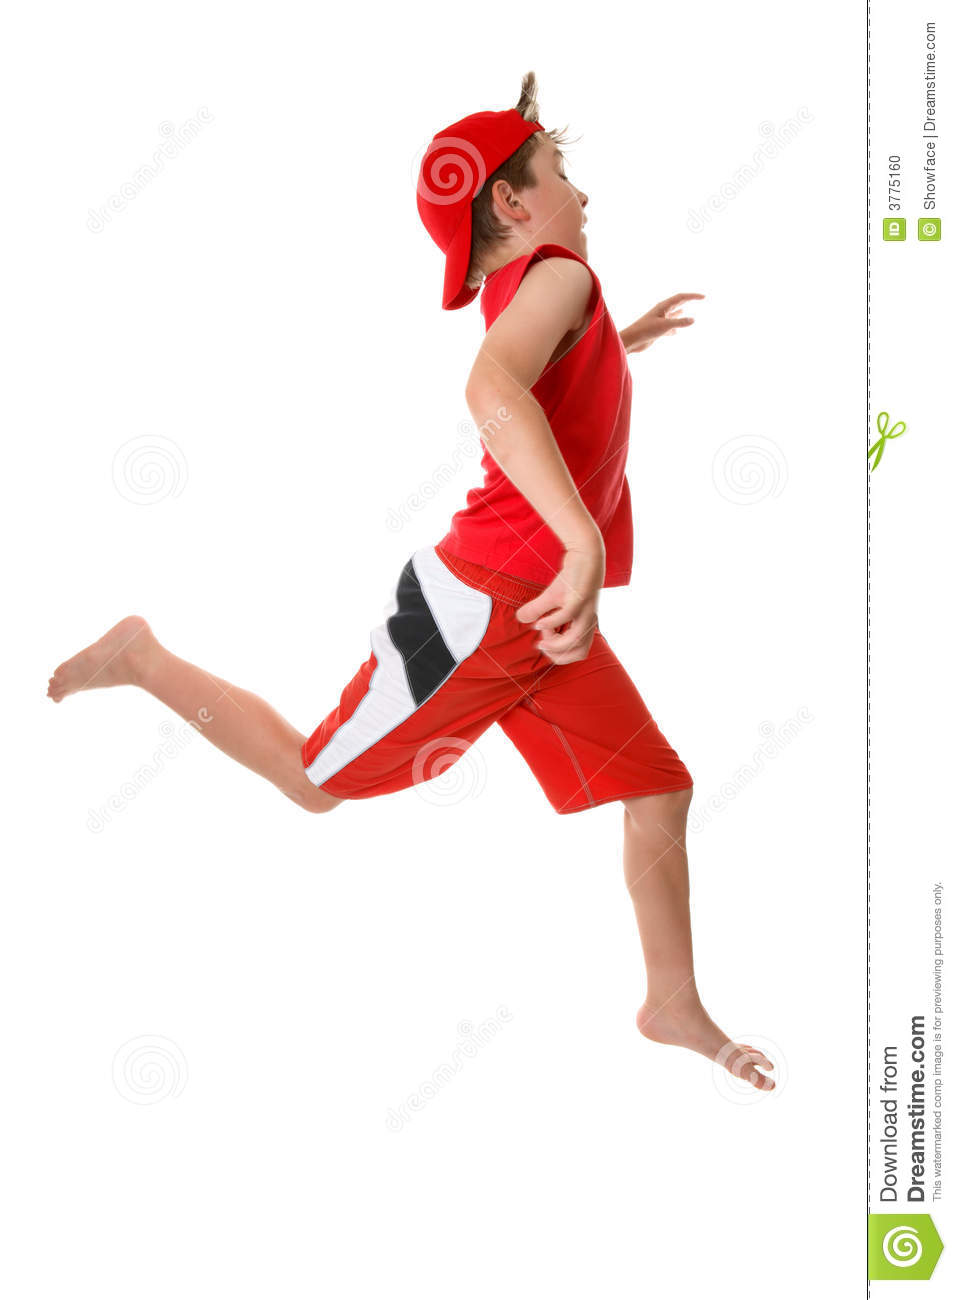 Child running fast stock photo. Image of fitness, people ...